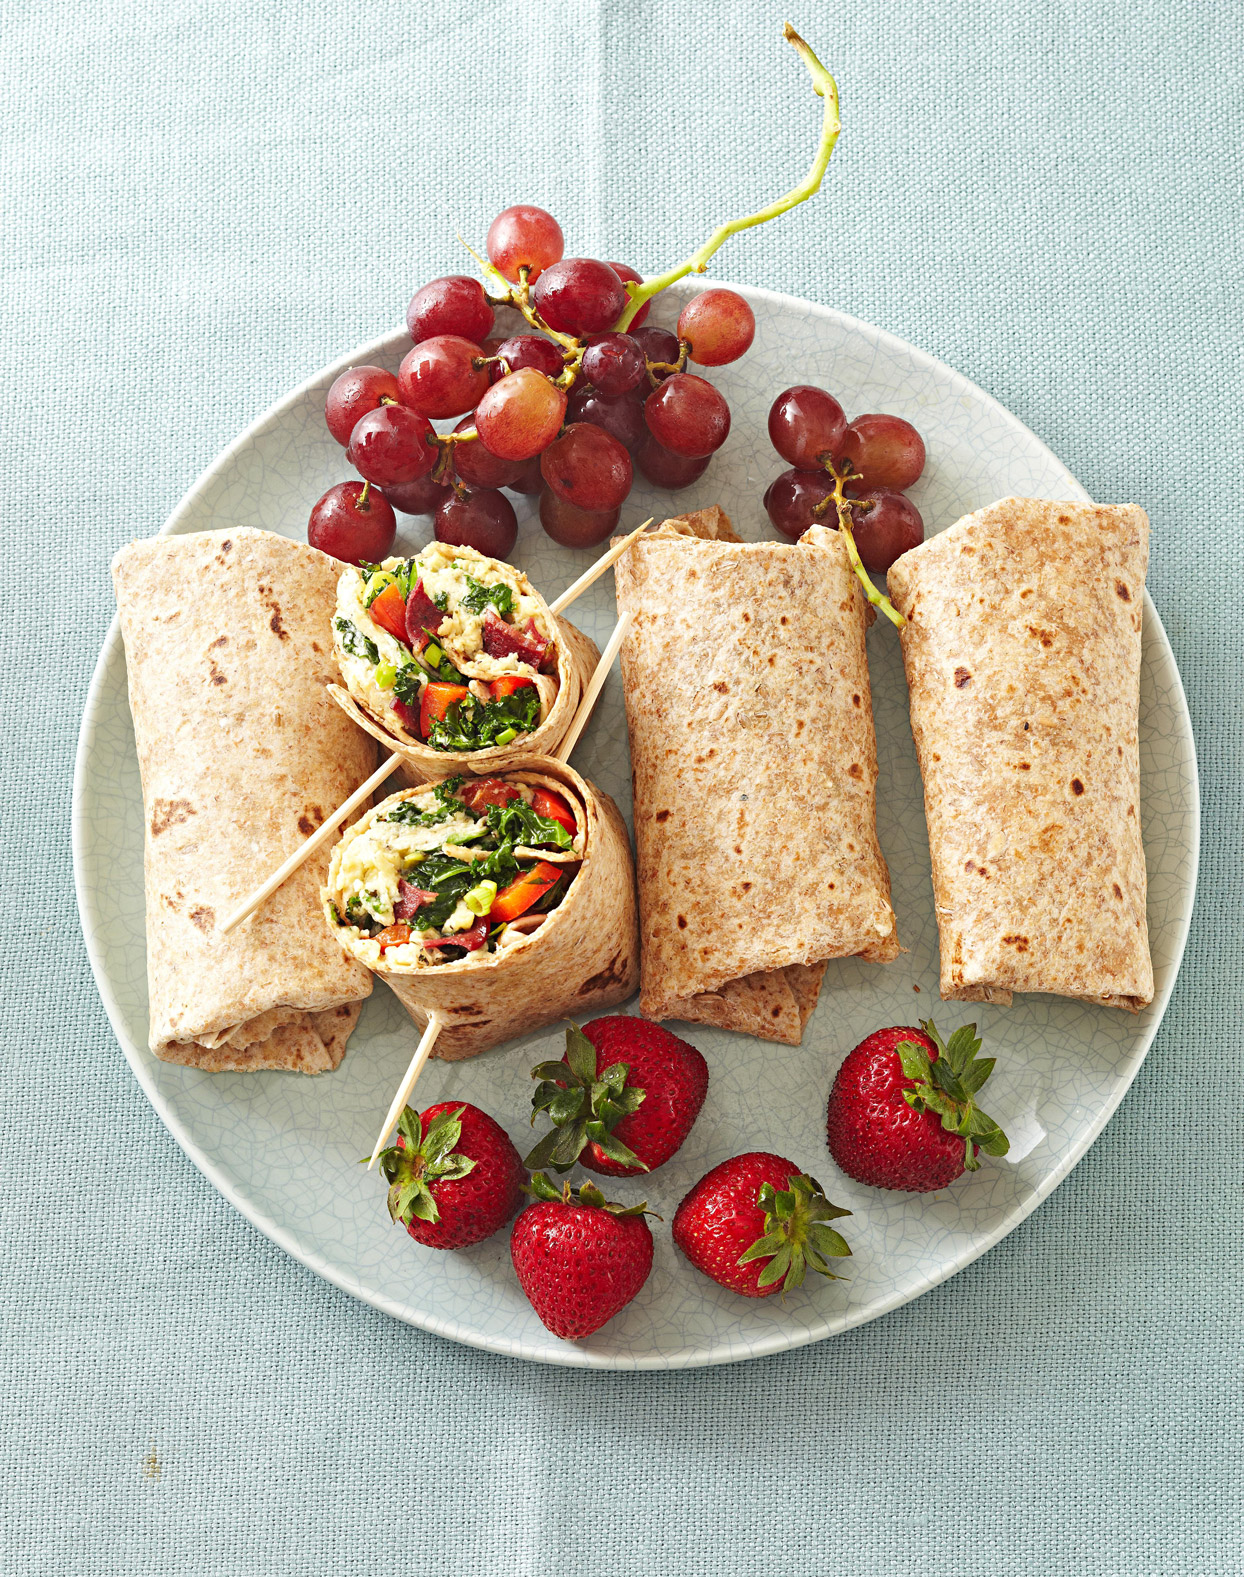 Greens Bacon Omelet Wraps